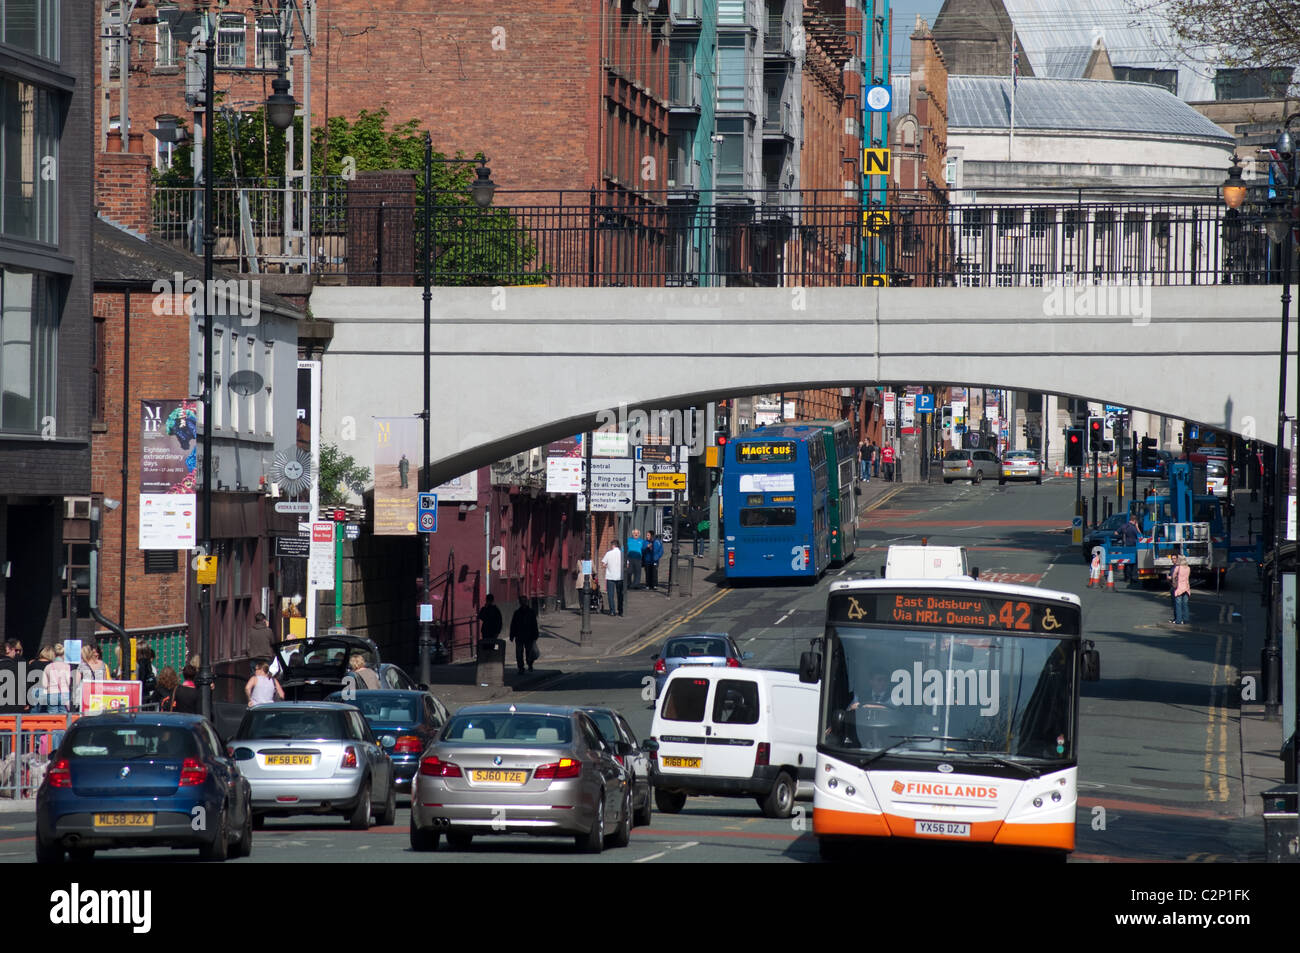 Oxford Road,Manchester,UK - Stock Image